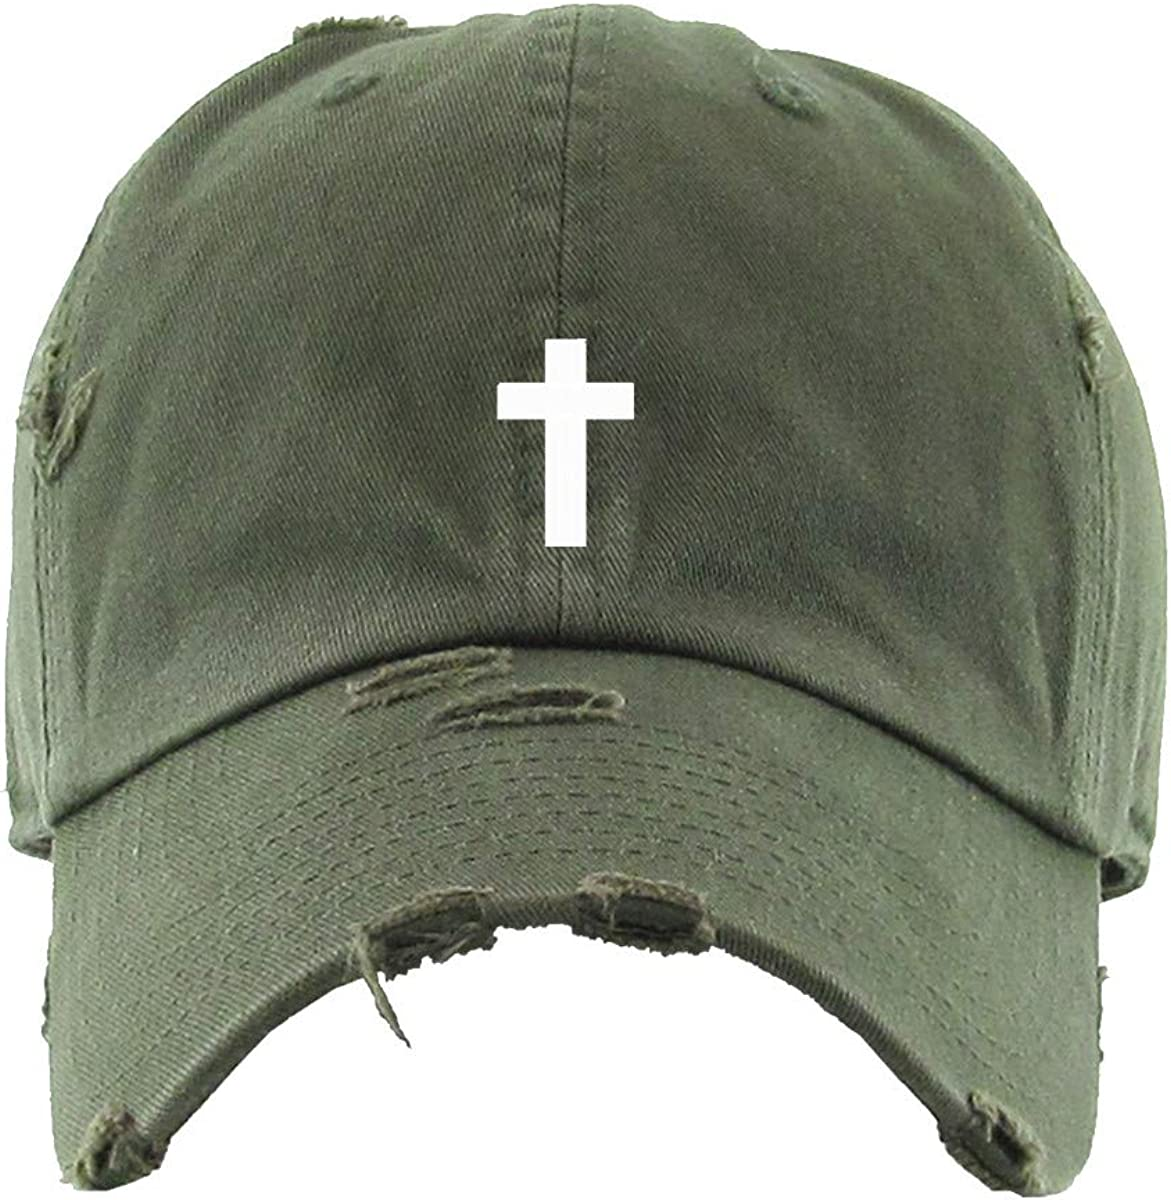 Cross Vintage Baseball Cap Embroidered Adjustable Max 81% OFF Distres Sale special price Cotton